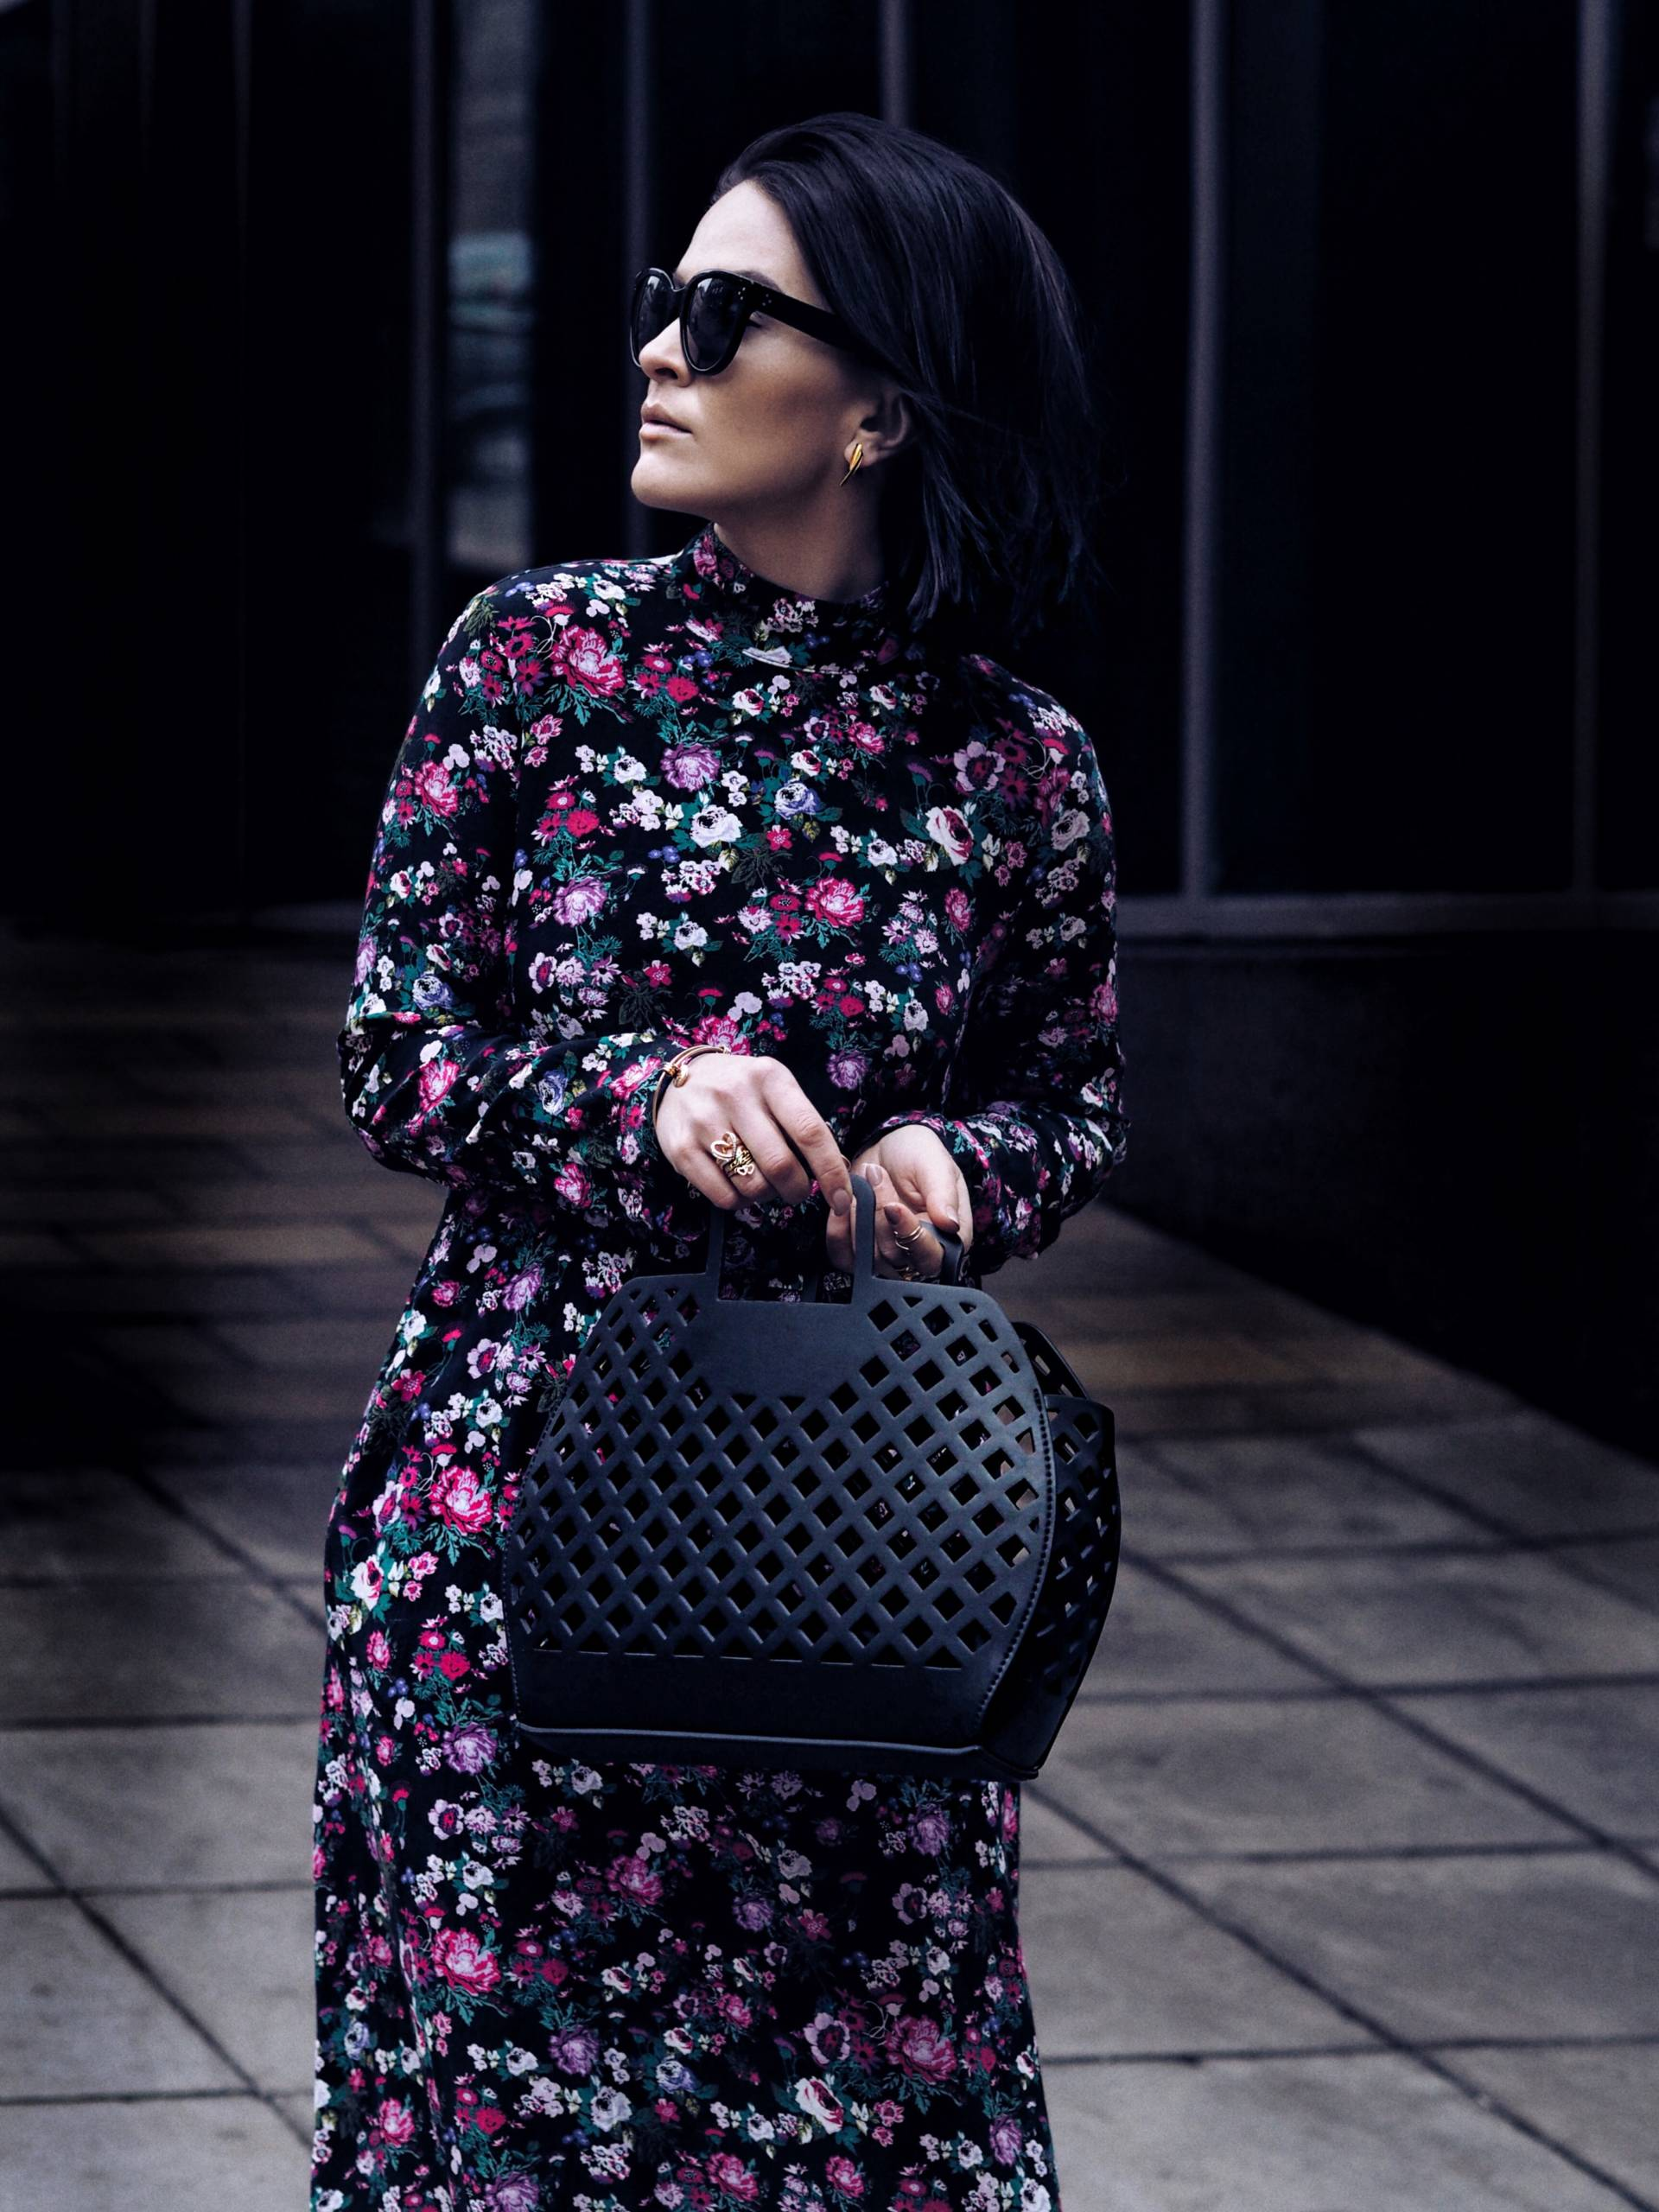 LAYERING-MIDI-DRESSES-IN-SPRING-WITH-JEANS-LAFOTKA-GLASGOW-FASHION-BLOGGER